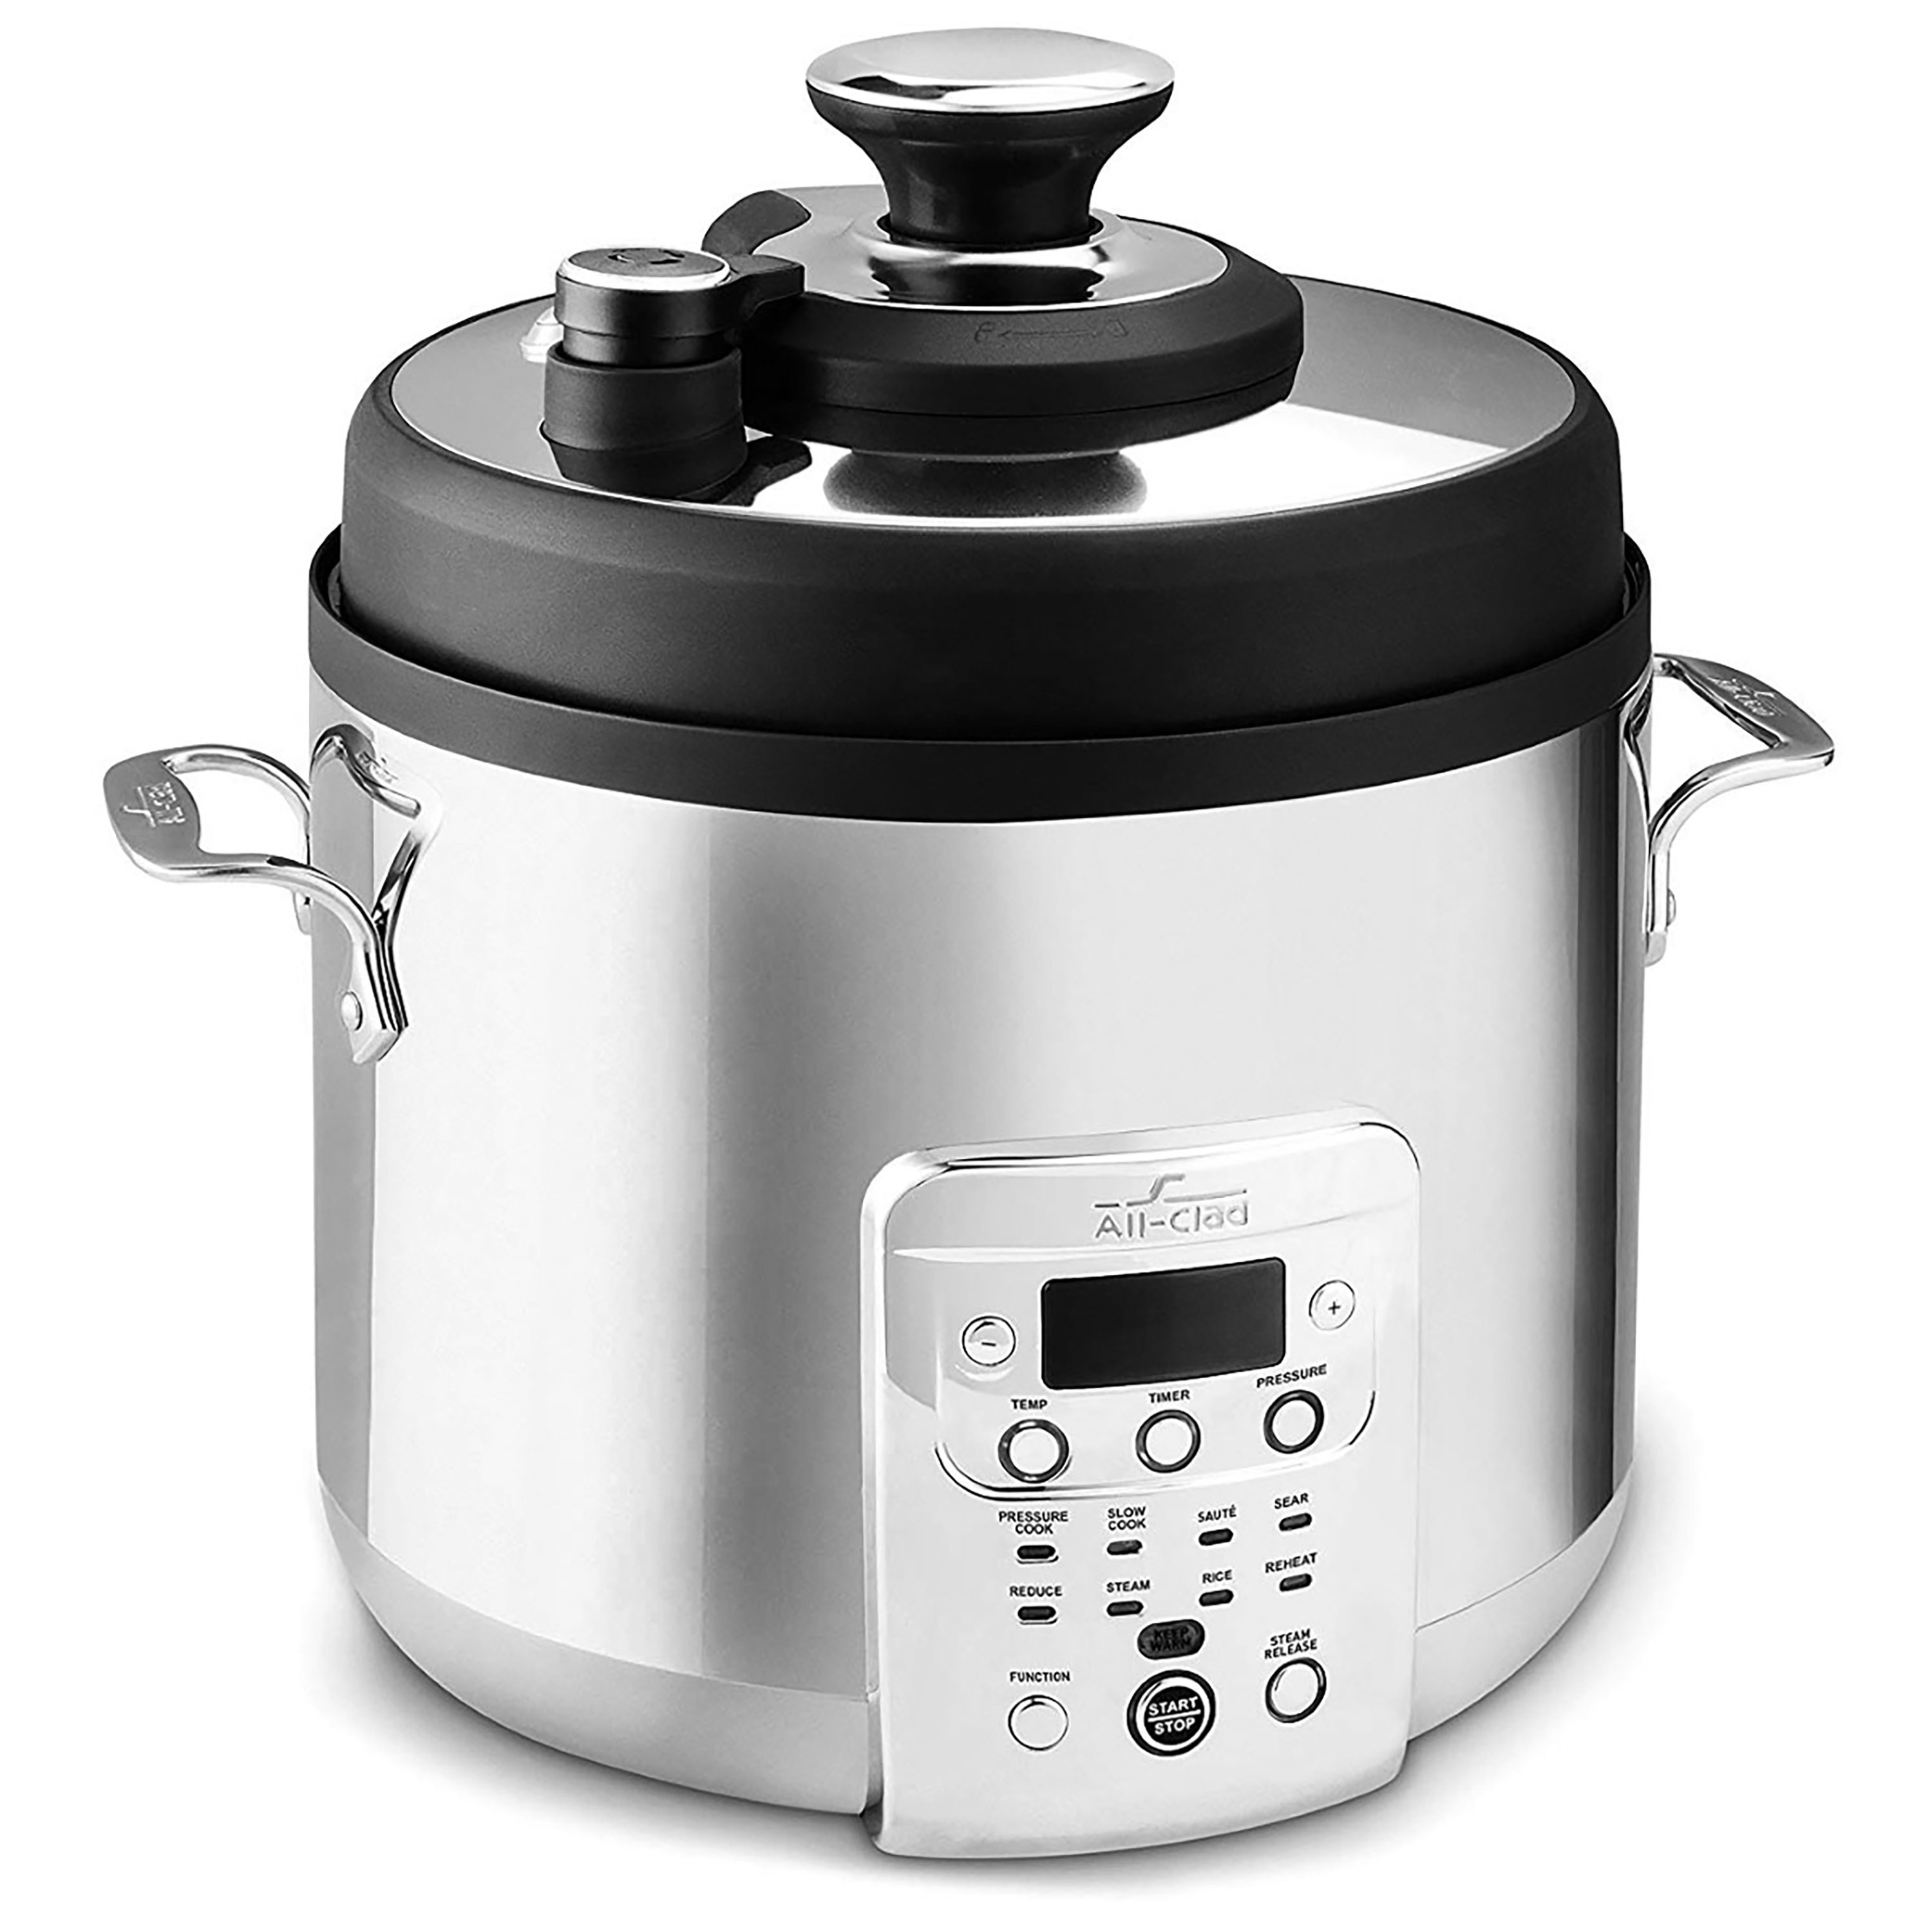 All Clad Electric Stainless Steel Pressure Cooker 6 Quart